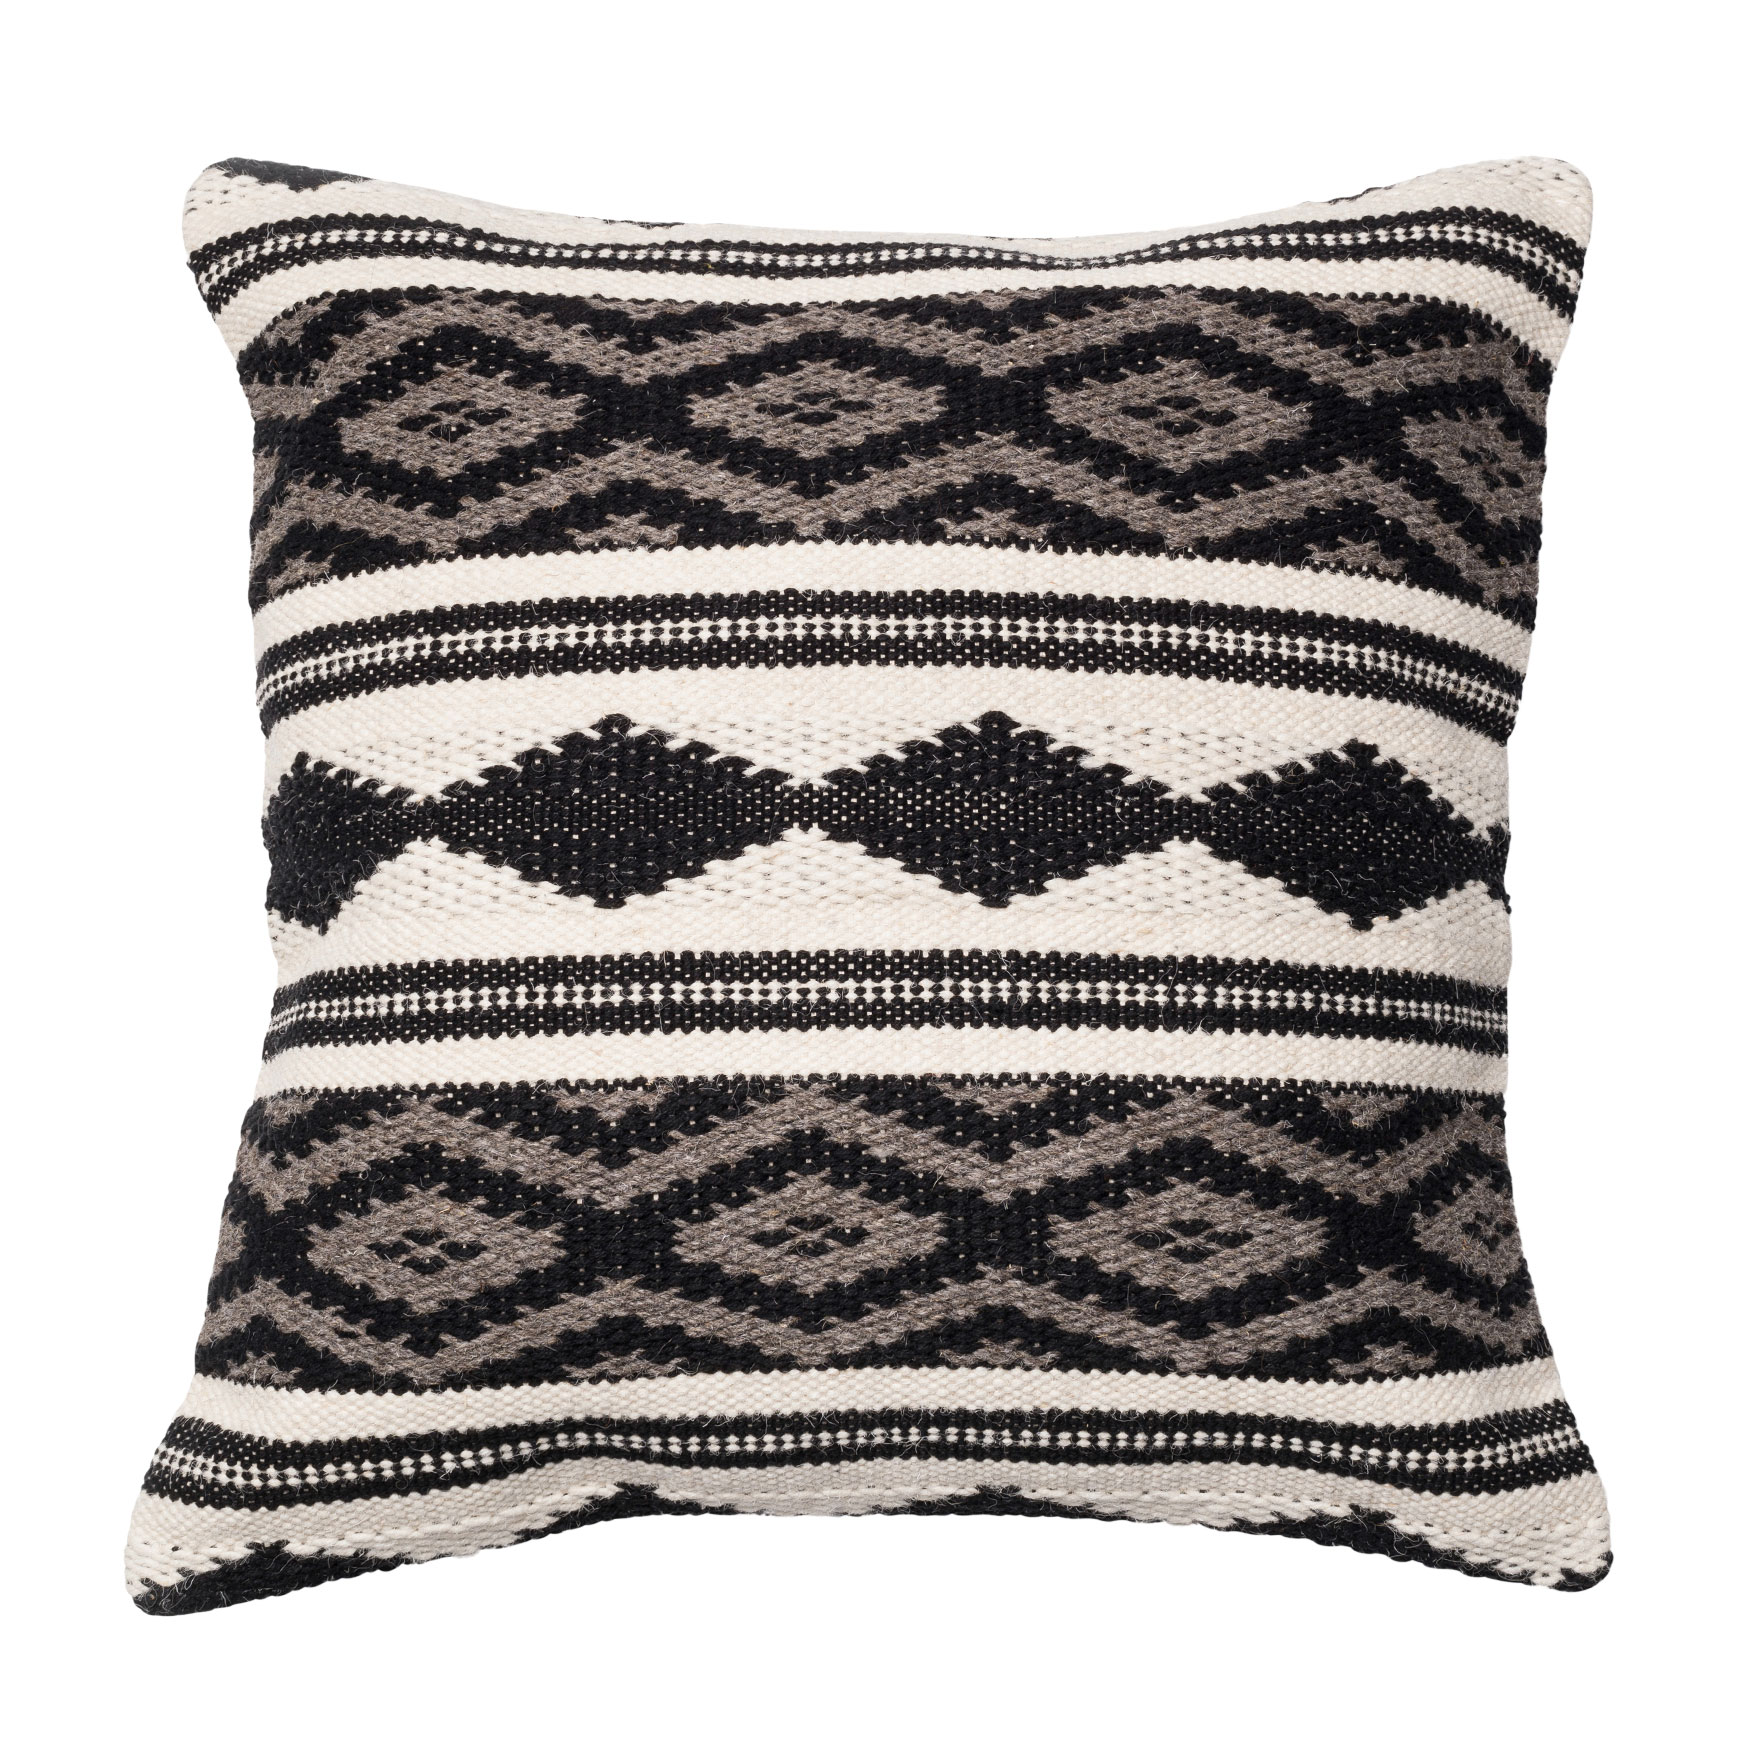 Monochromatic Aztec Inspired Woven Pillow, GREY MULTI